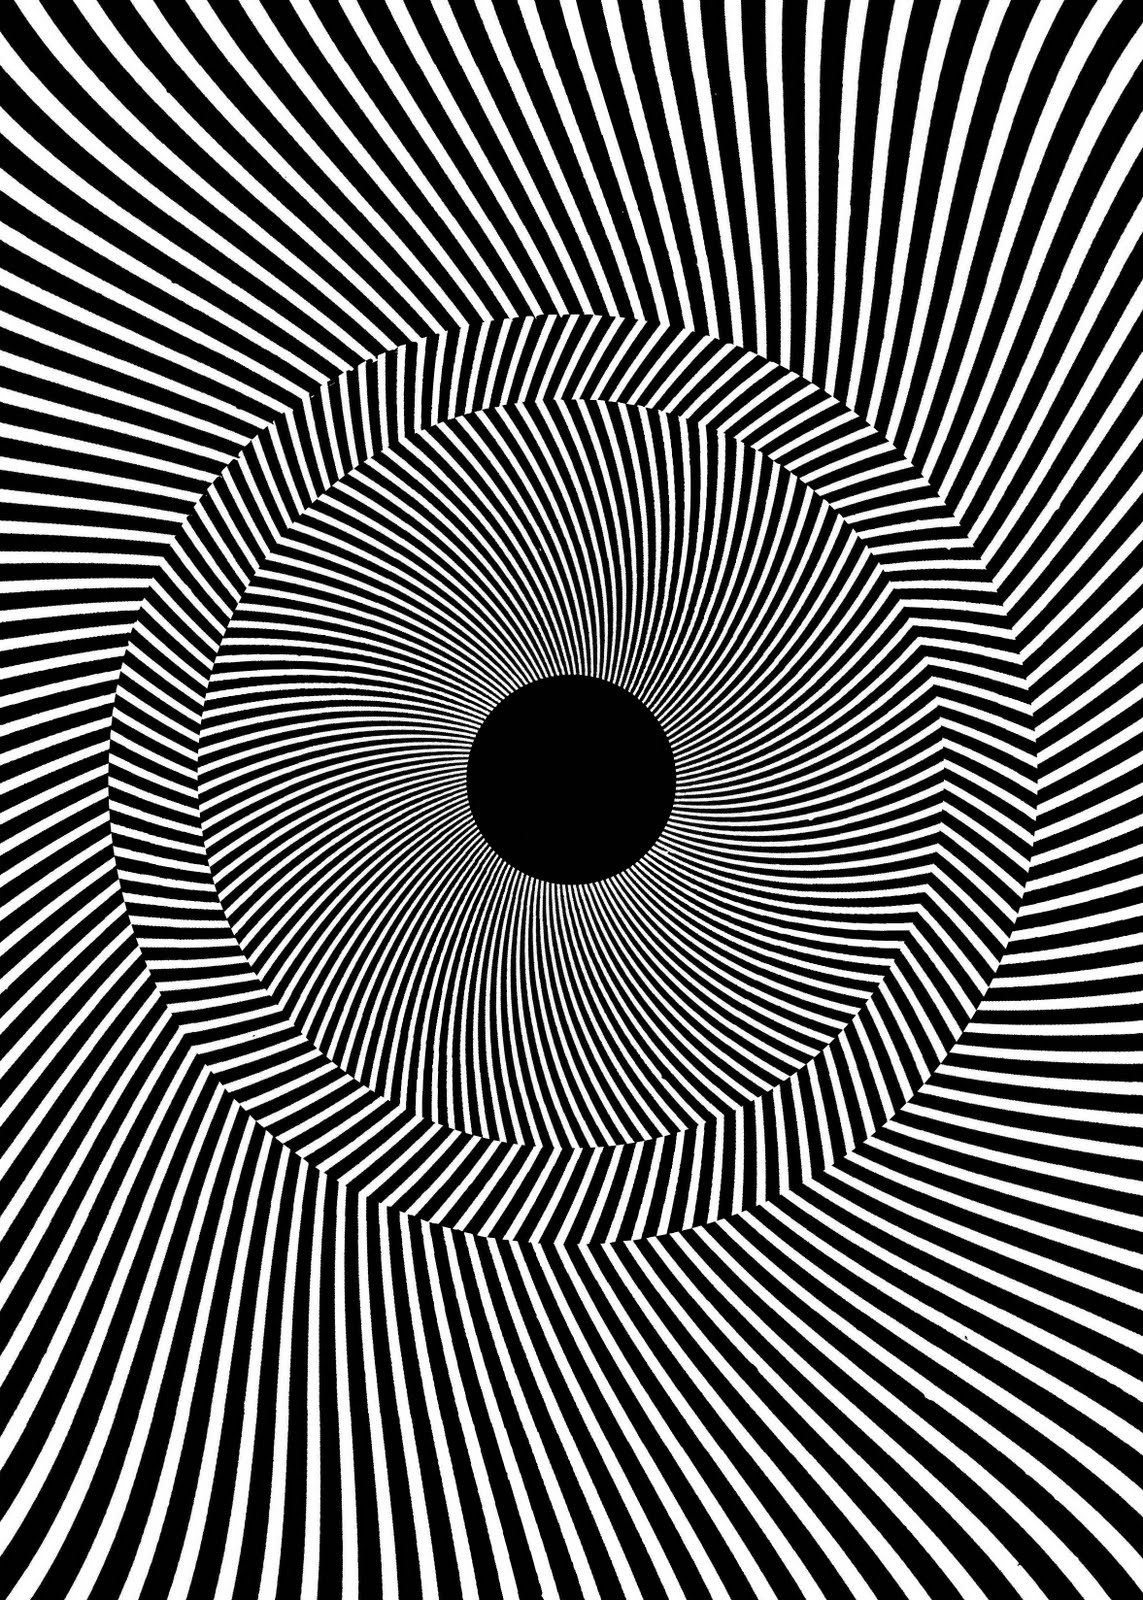 optical illusion lines illusions illussion fractal tilted rotating vector viral line lab project number comments